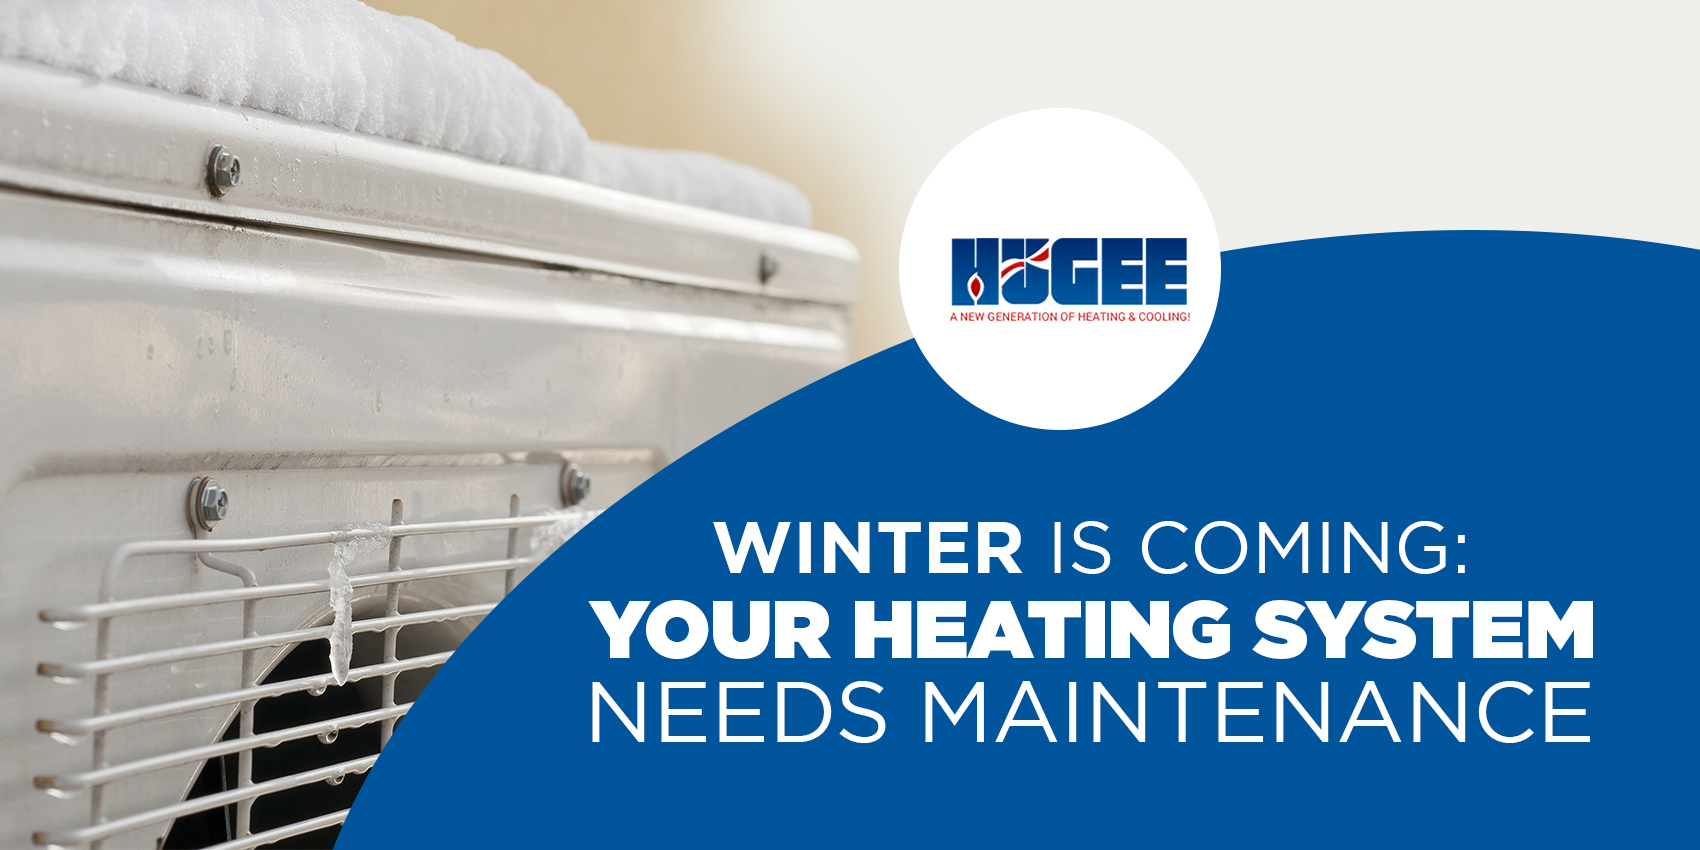 Winter Is Coming: Your Heating System Needs Maintenance